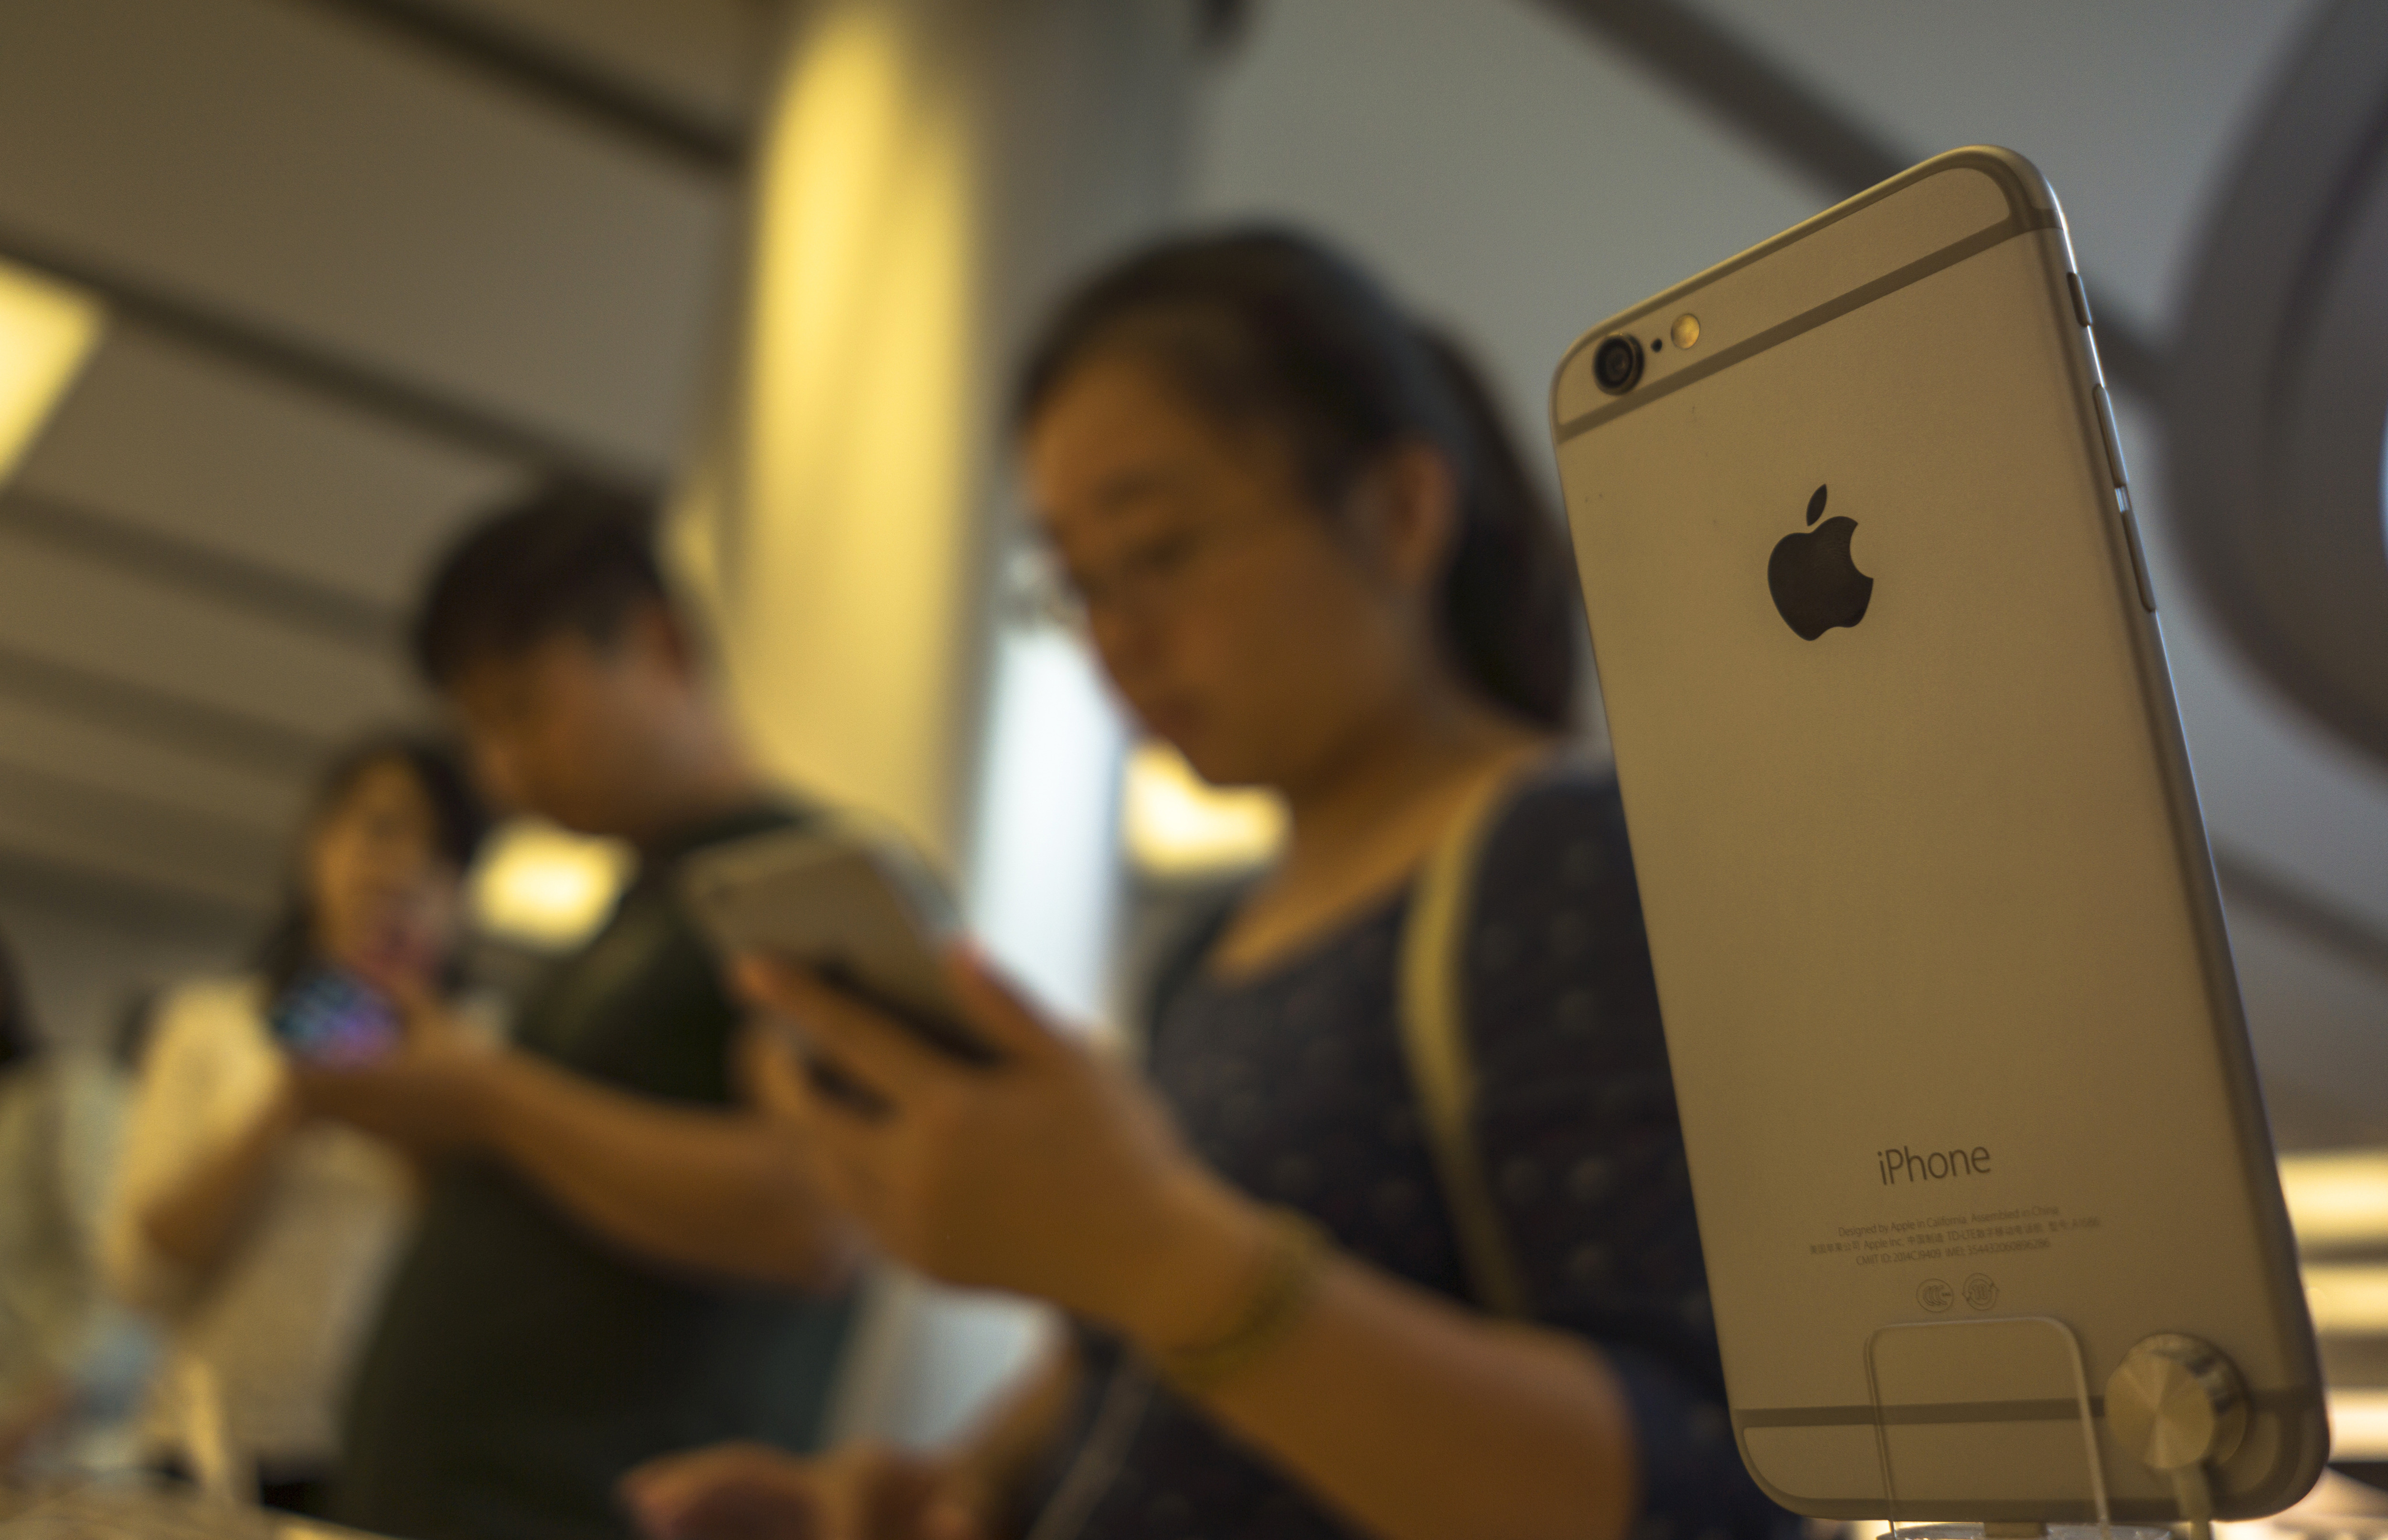 Chinese consumers are trying out iPhone 6 in an apple store